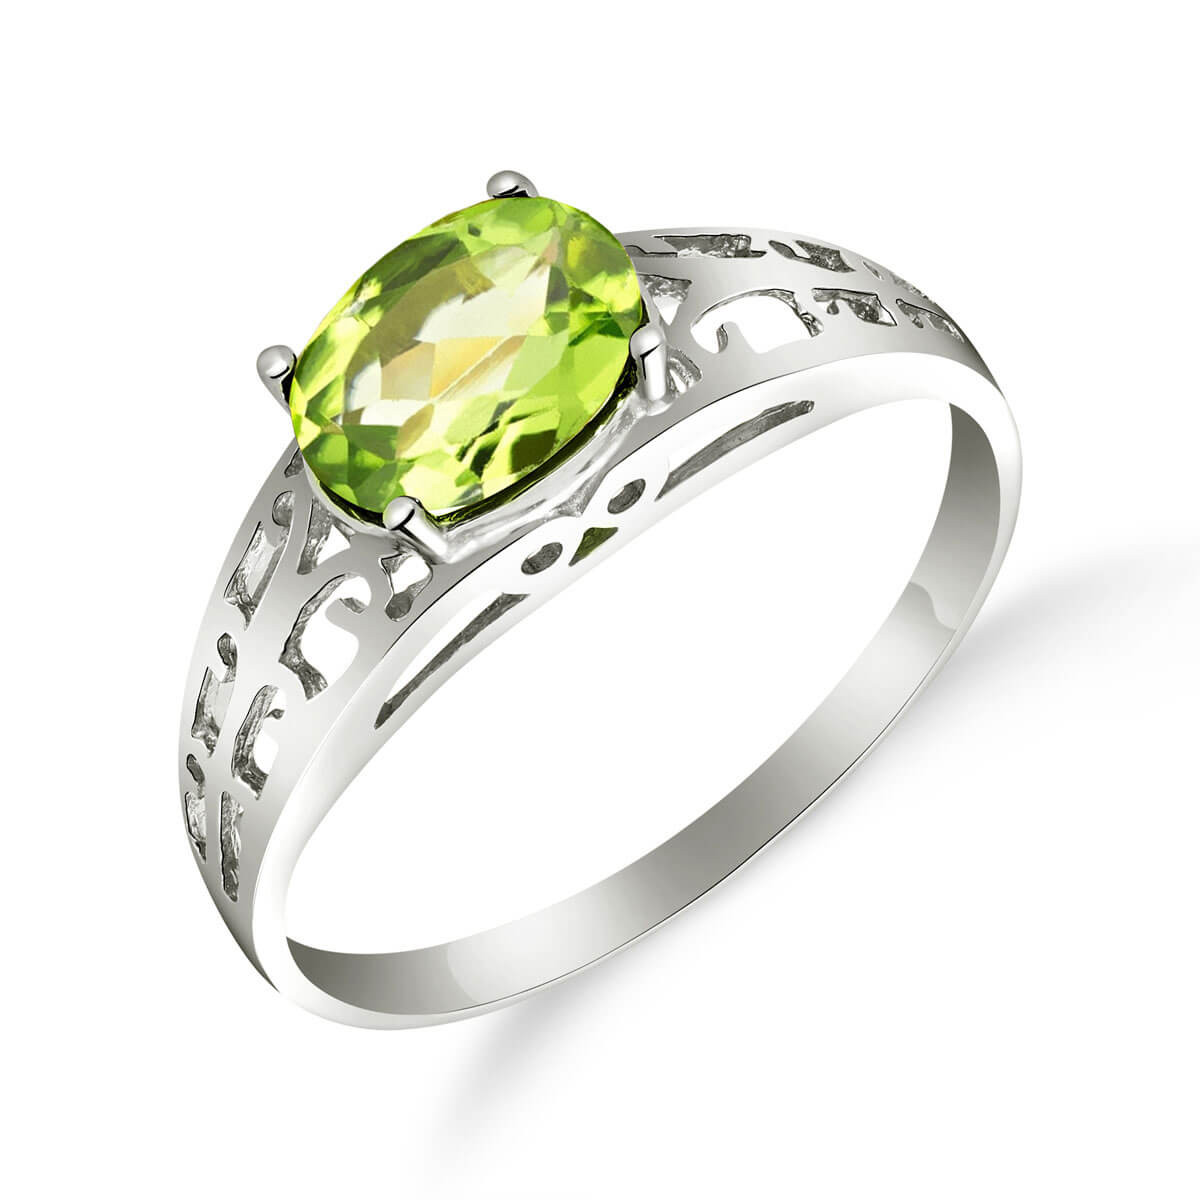 Peridot Catalan Filigree Ring 1.15 ct in Sterling Silver